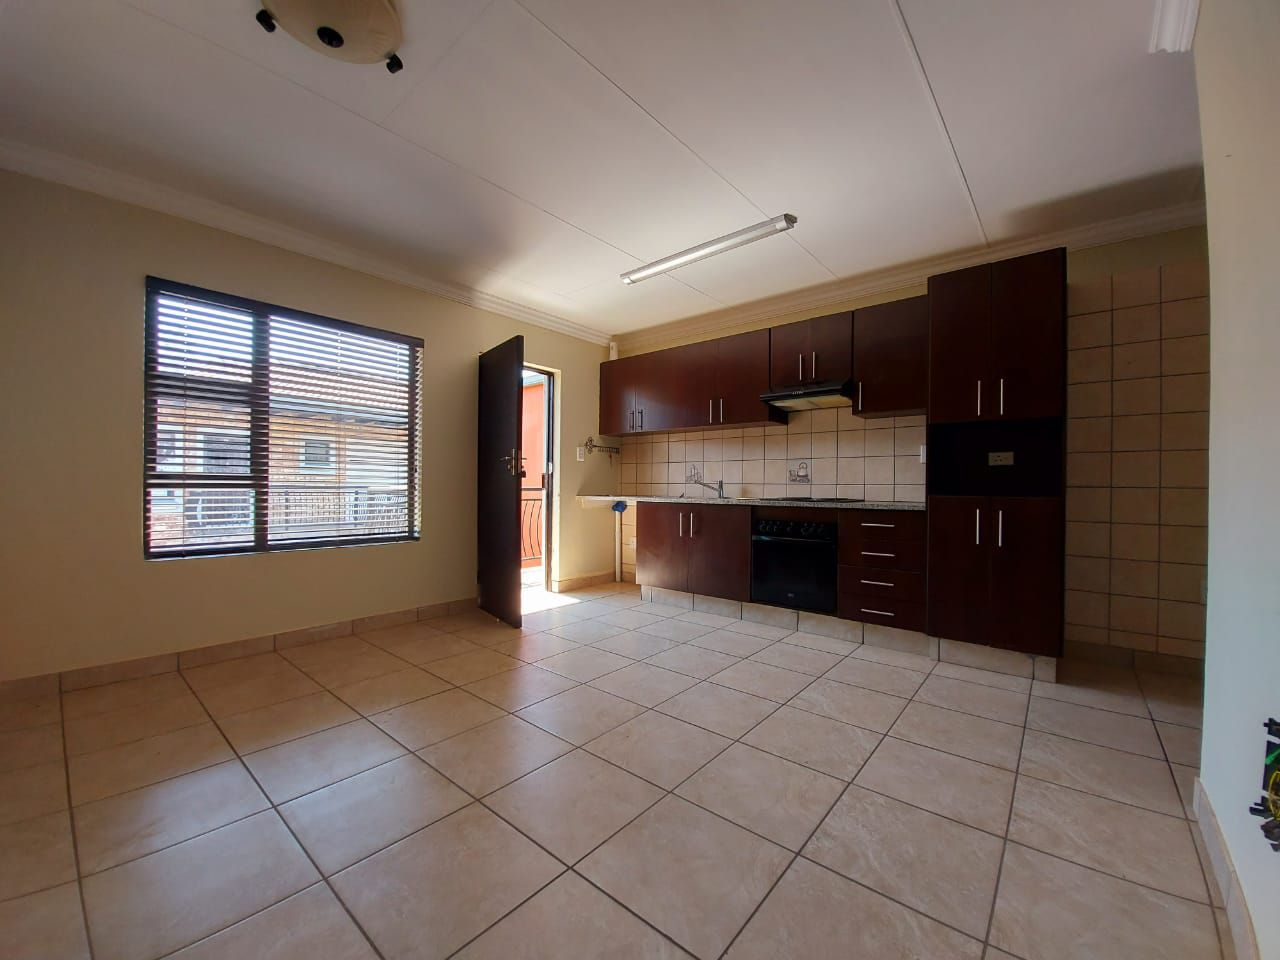 Apartment in Bult - WhatsApp Image 2020-08-17 at 13.25.39 (6).jpeg